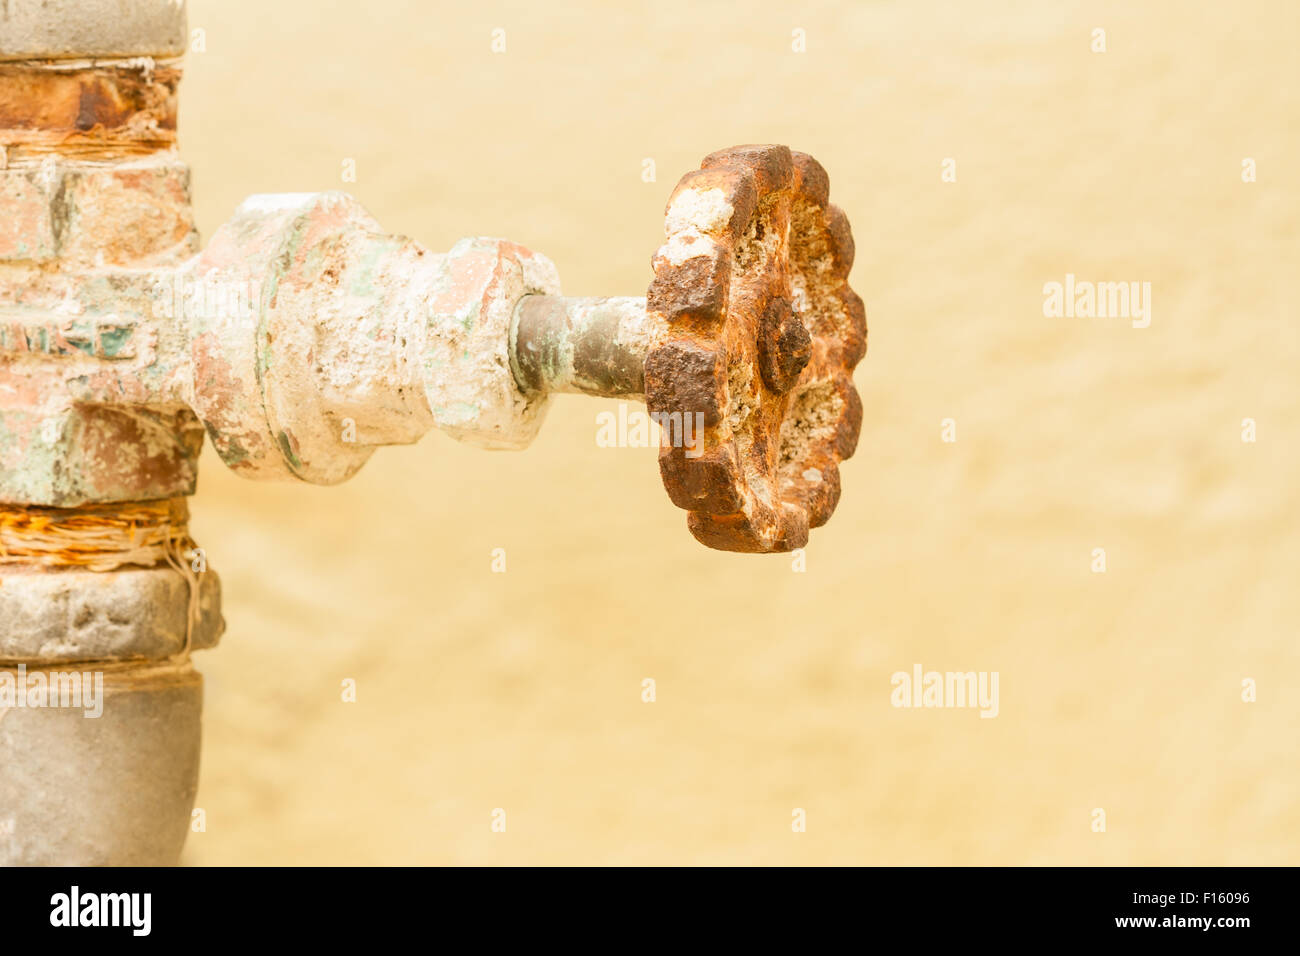 Closeup view of a gate valve that is covered with rust. - Stock Image